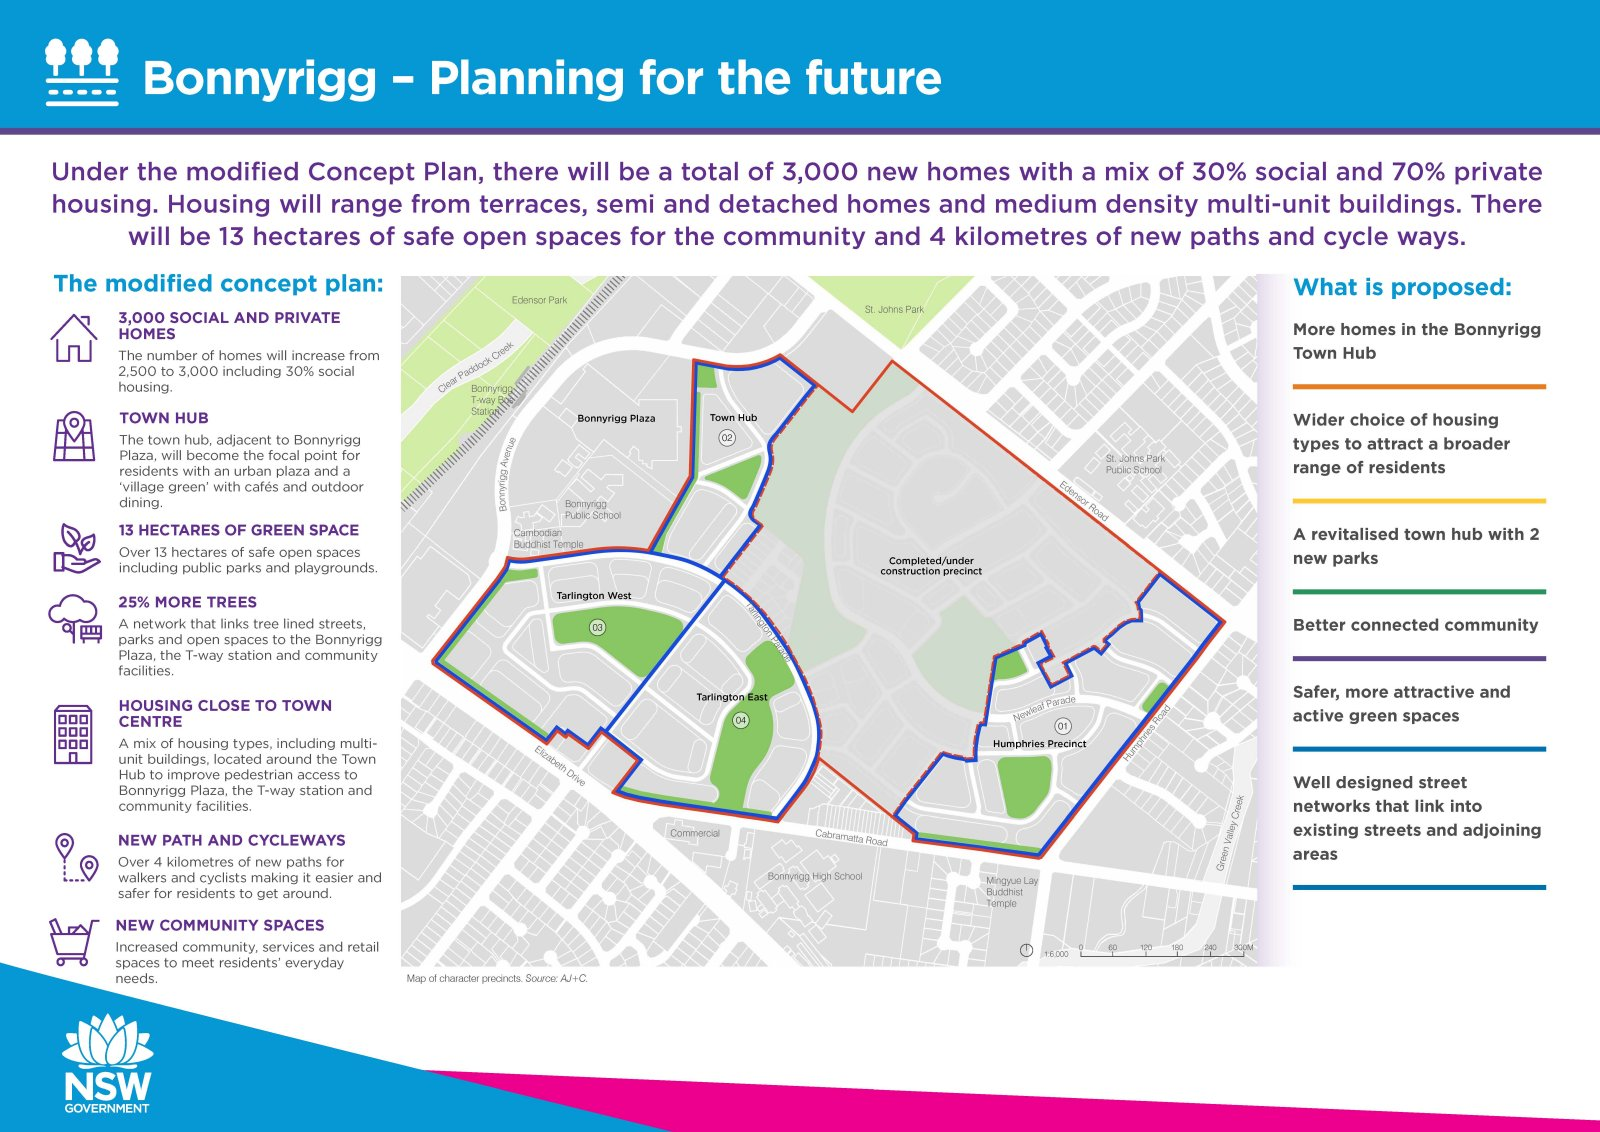 Bonnyrigg Planning for the Future infographic